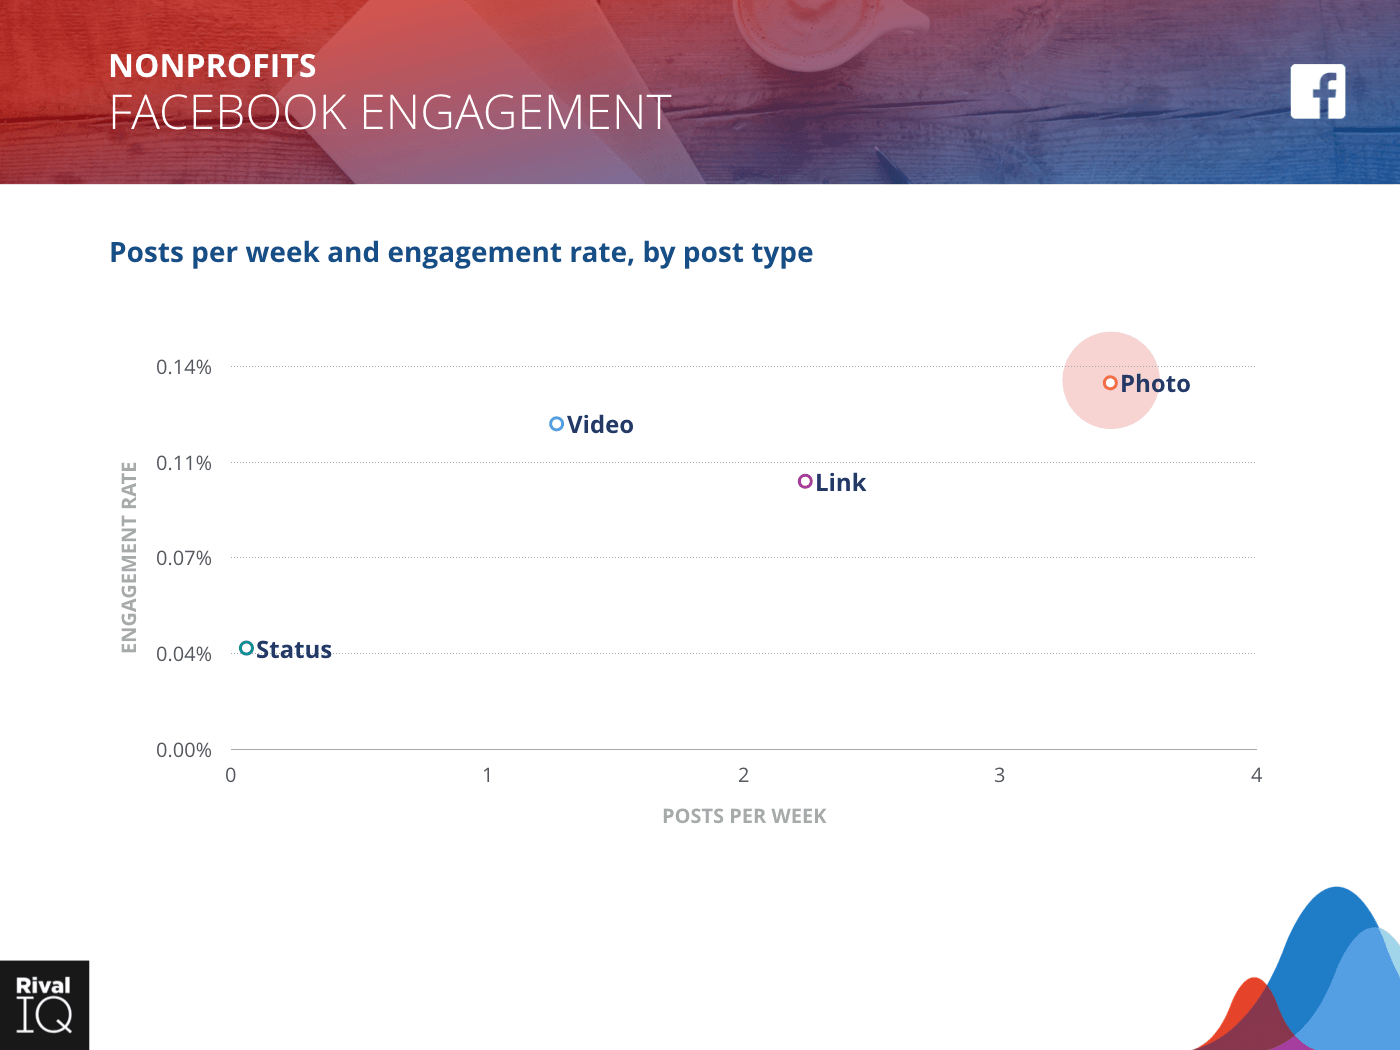 Nonprofit Industry: scatter graph, average post per week by type and engagement rate on Facebook